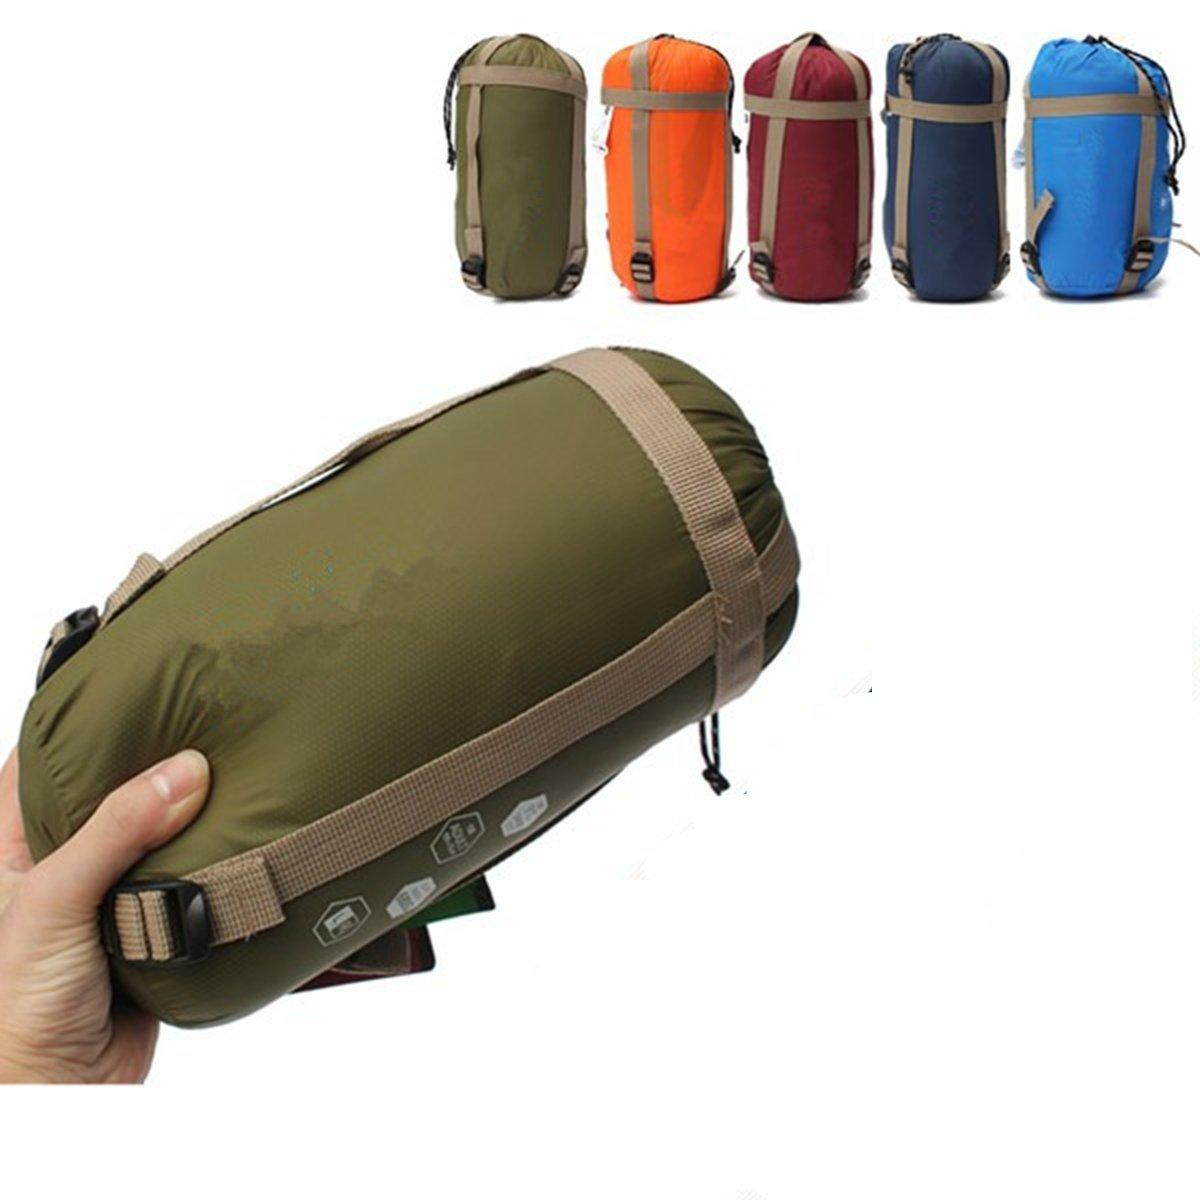 CAMTOA Outdoor Sleeping Bag Camping Sleeping Bag